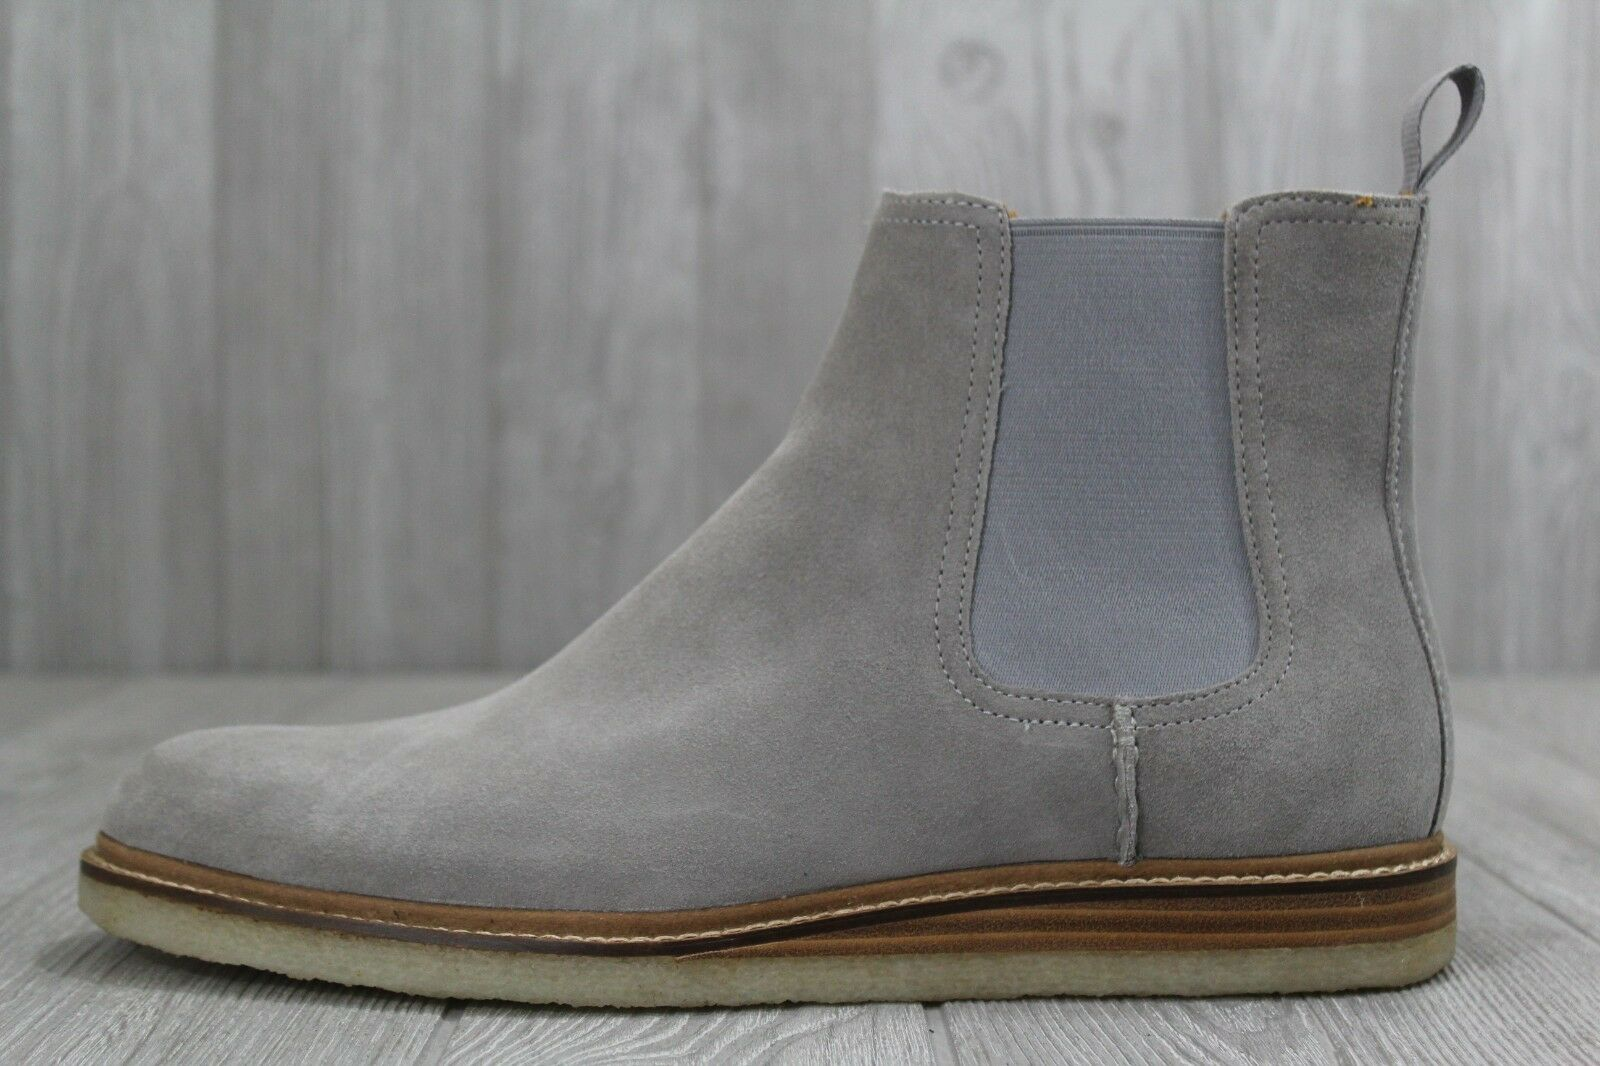 33 Mens Sperry gold Cup Crepe Sole Suede Chelsea Boots 10-11.5 Grey Slip On  230